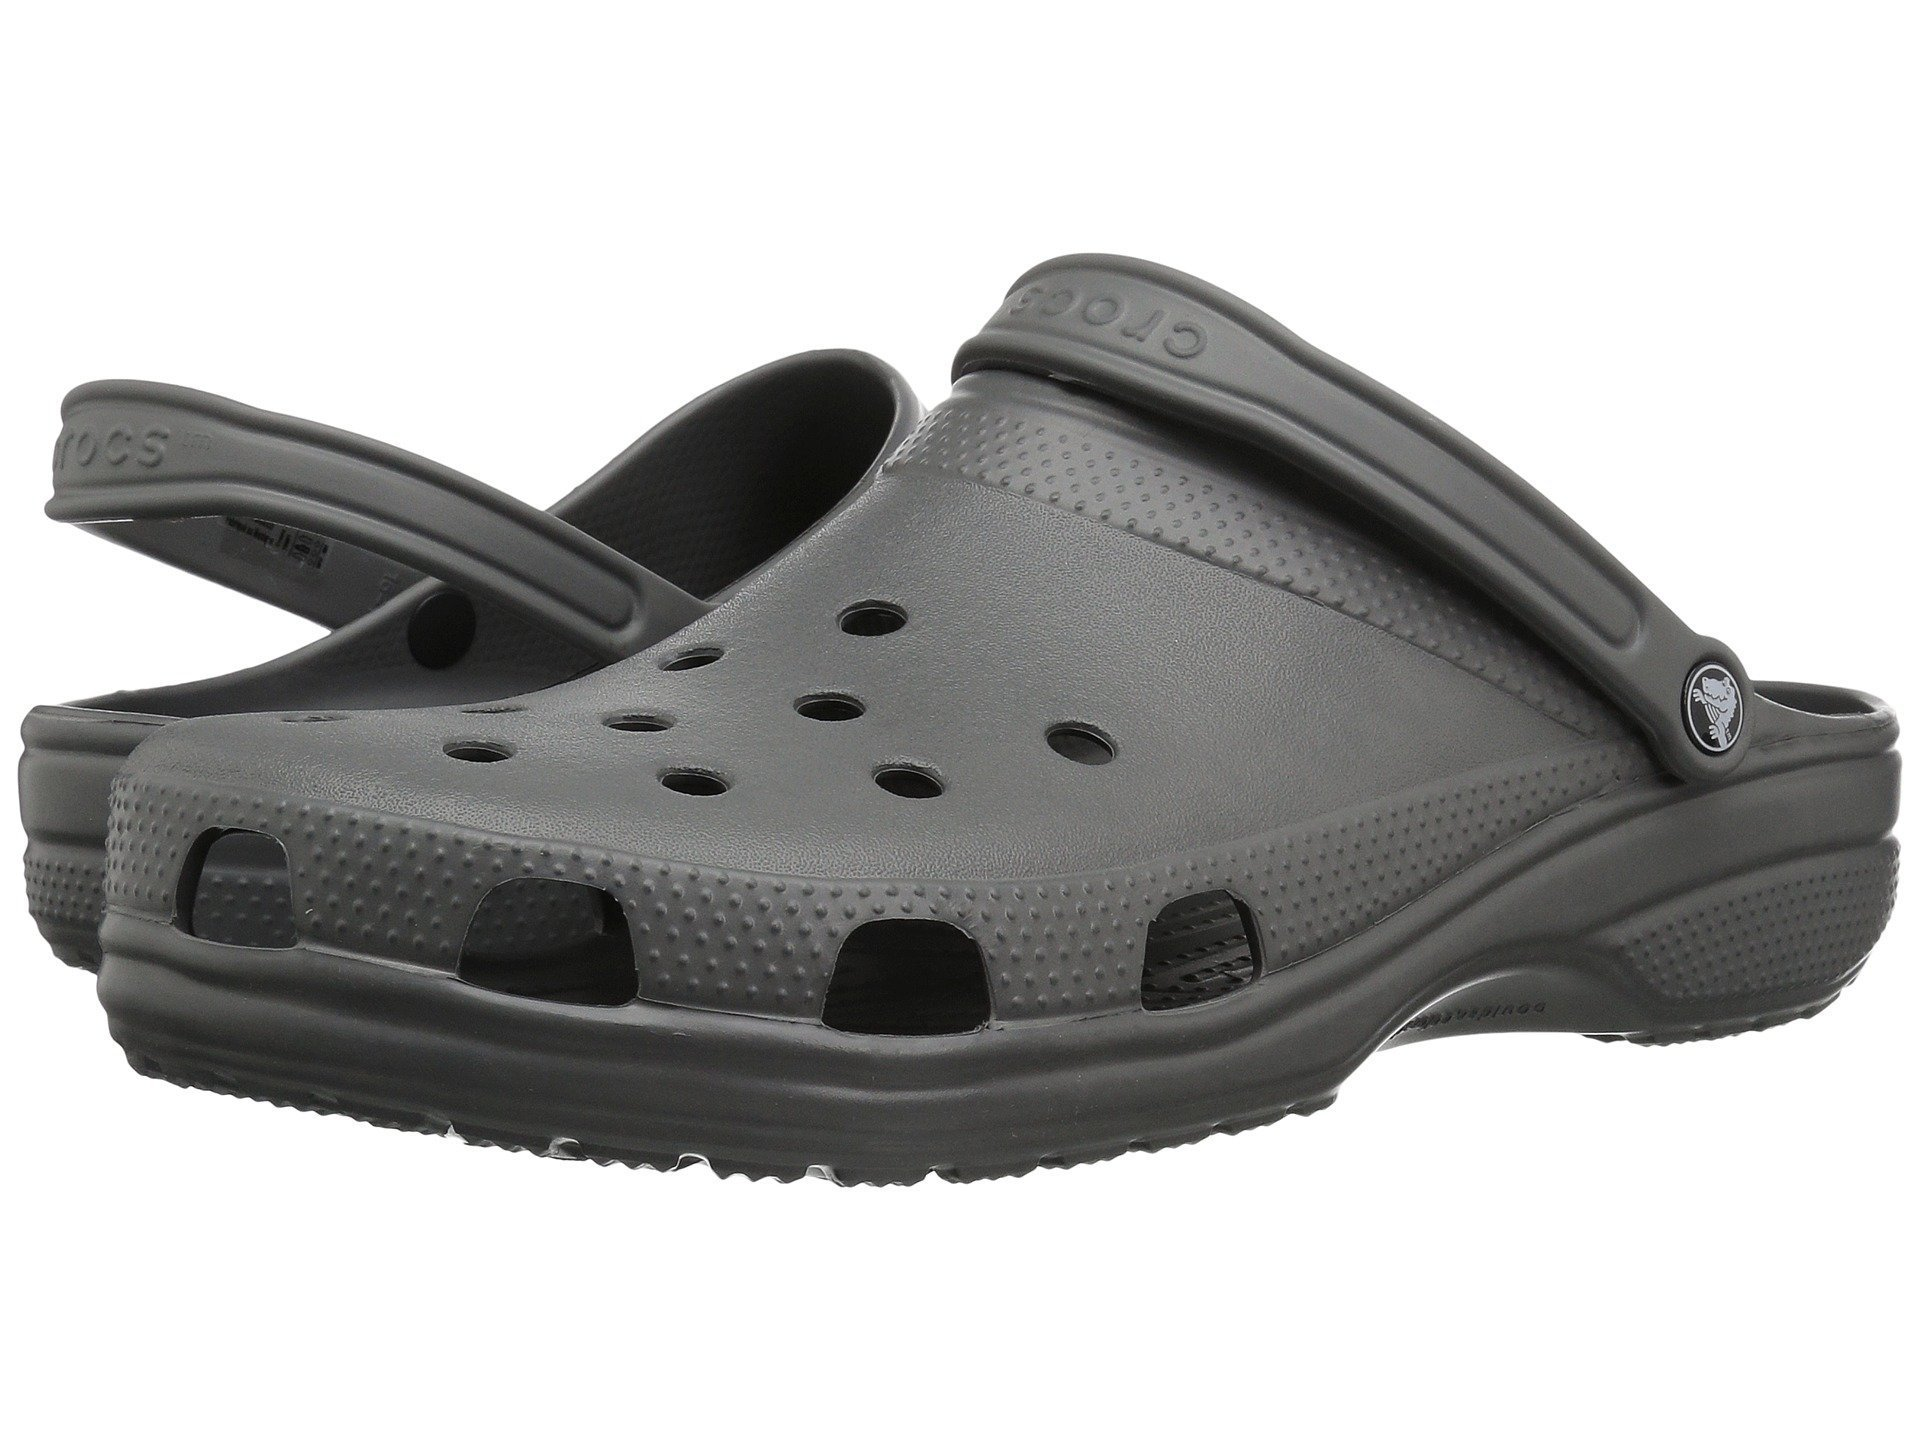 Crocs Classic Mule Slate Grey - 9 US Men/ 11 US Women M US